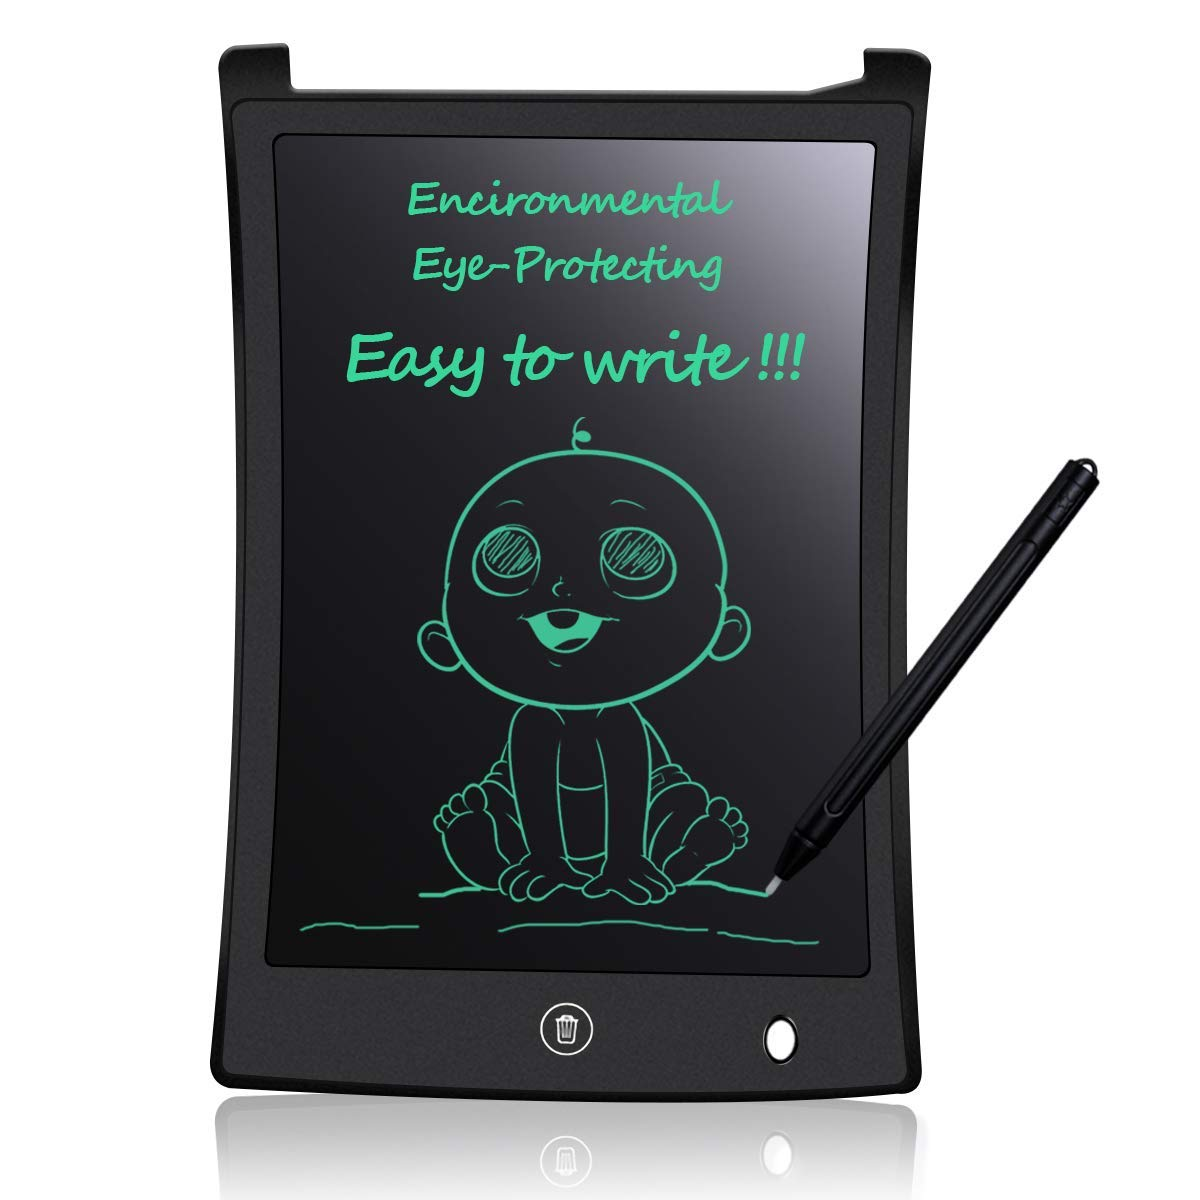 WANGOFUN Smart Writing Tablet Doodle Drawing Board with Bluetooth Electronic Drawing Tablet Graphics Doodle Board Gifts for Kids /& Adults,White